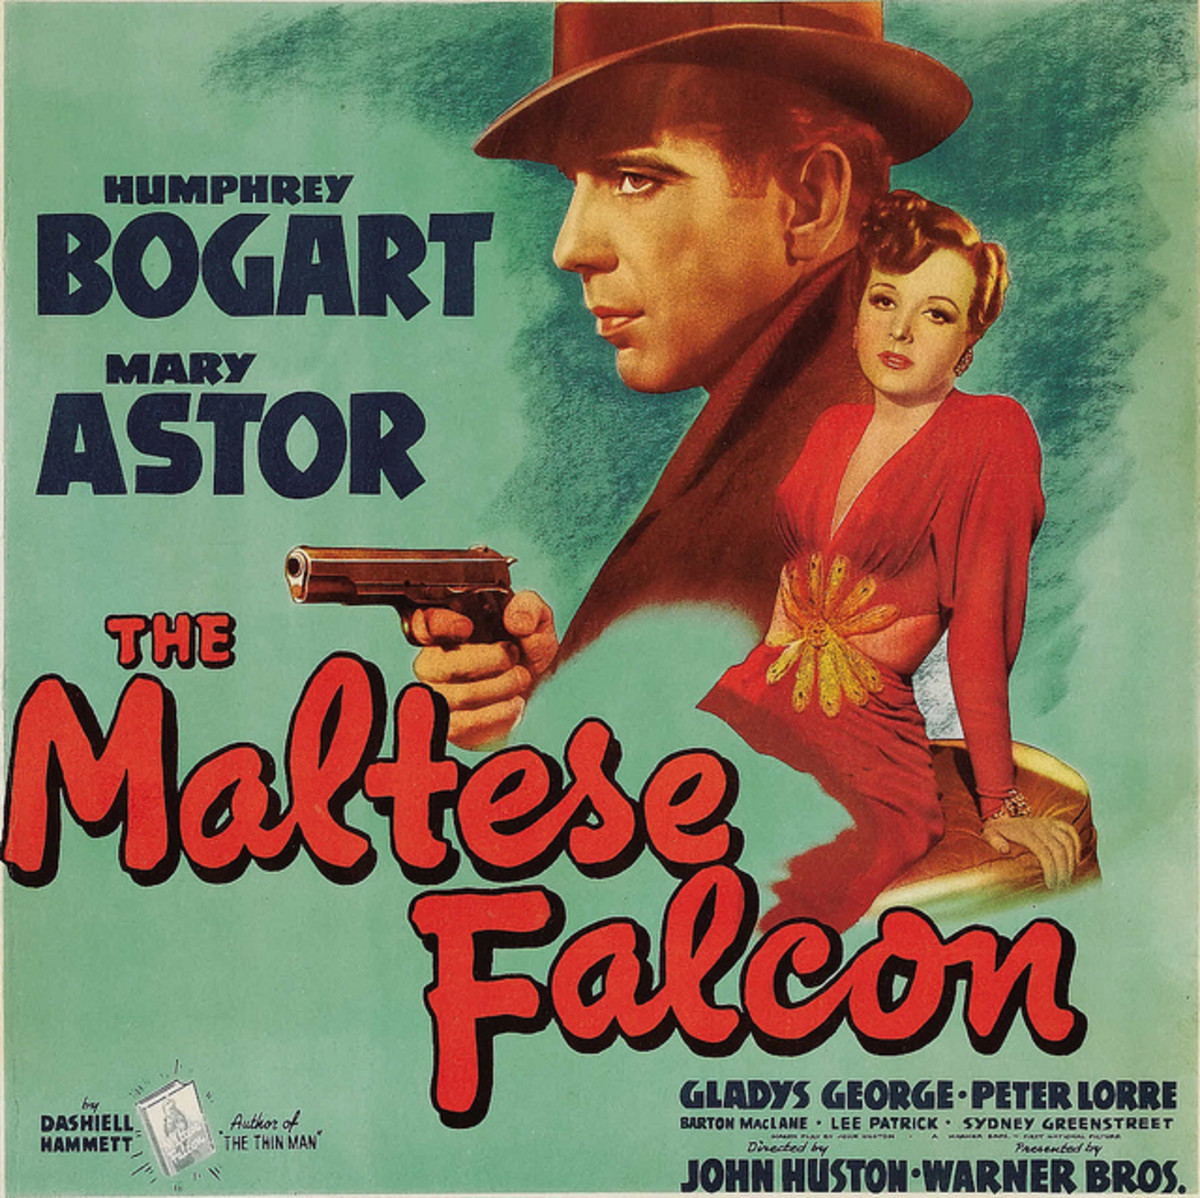 The Maltese Falcon Warner Brothers Six Sheet  1941 14 X 22  Humphrey Bogart Mary Astor